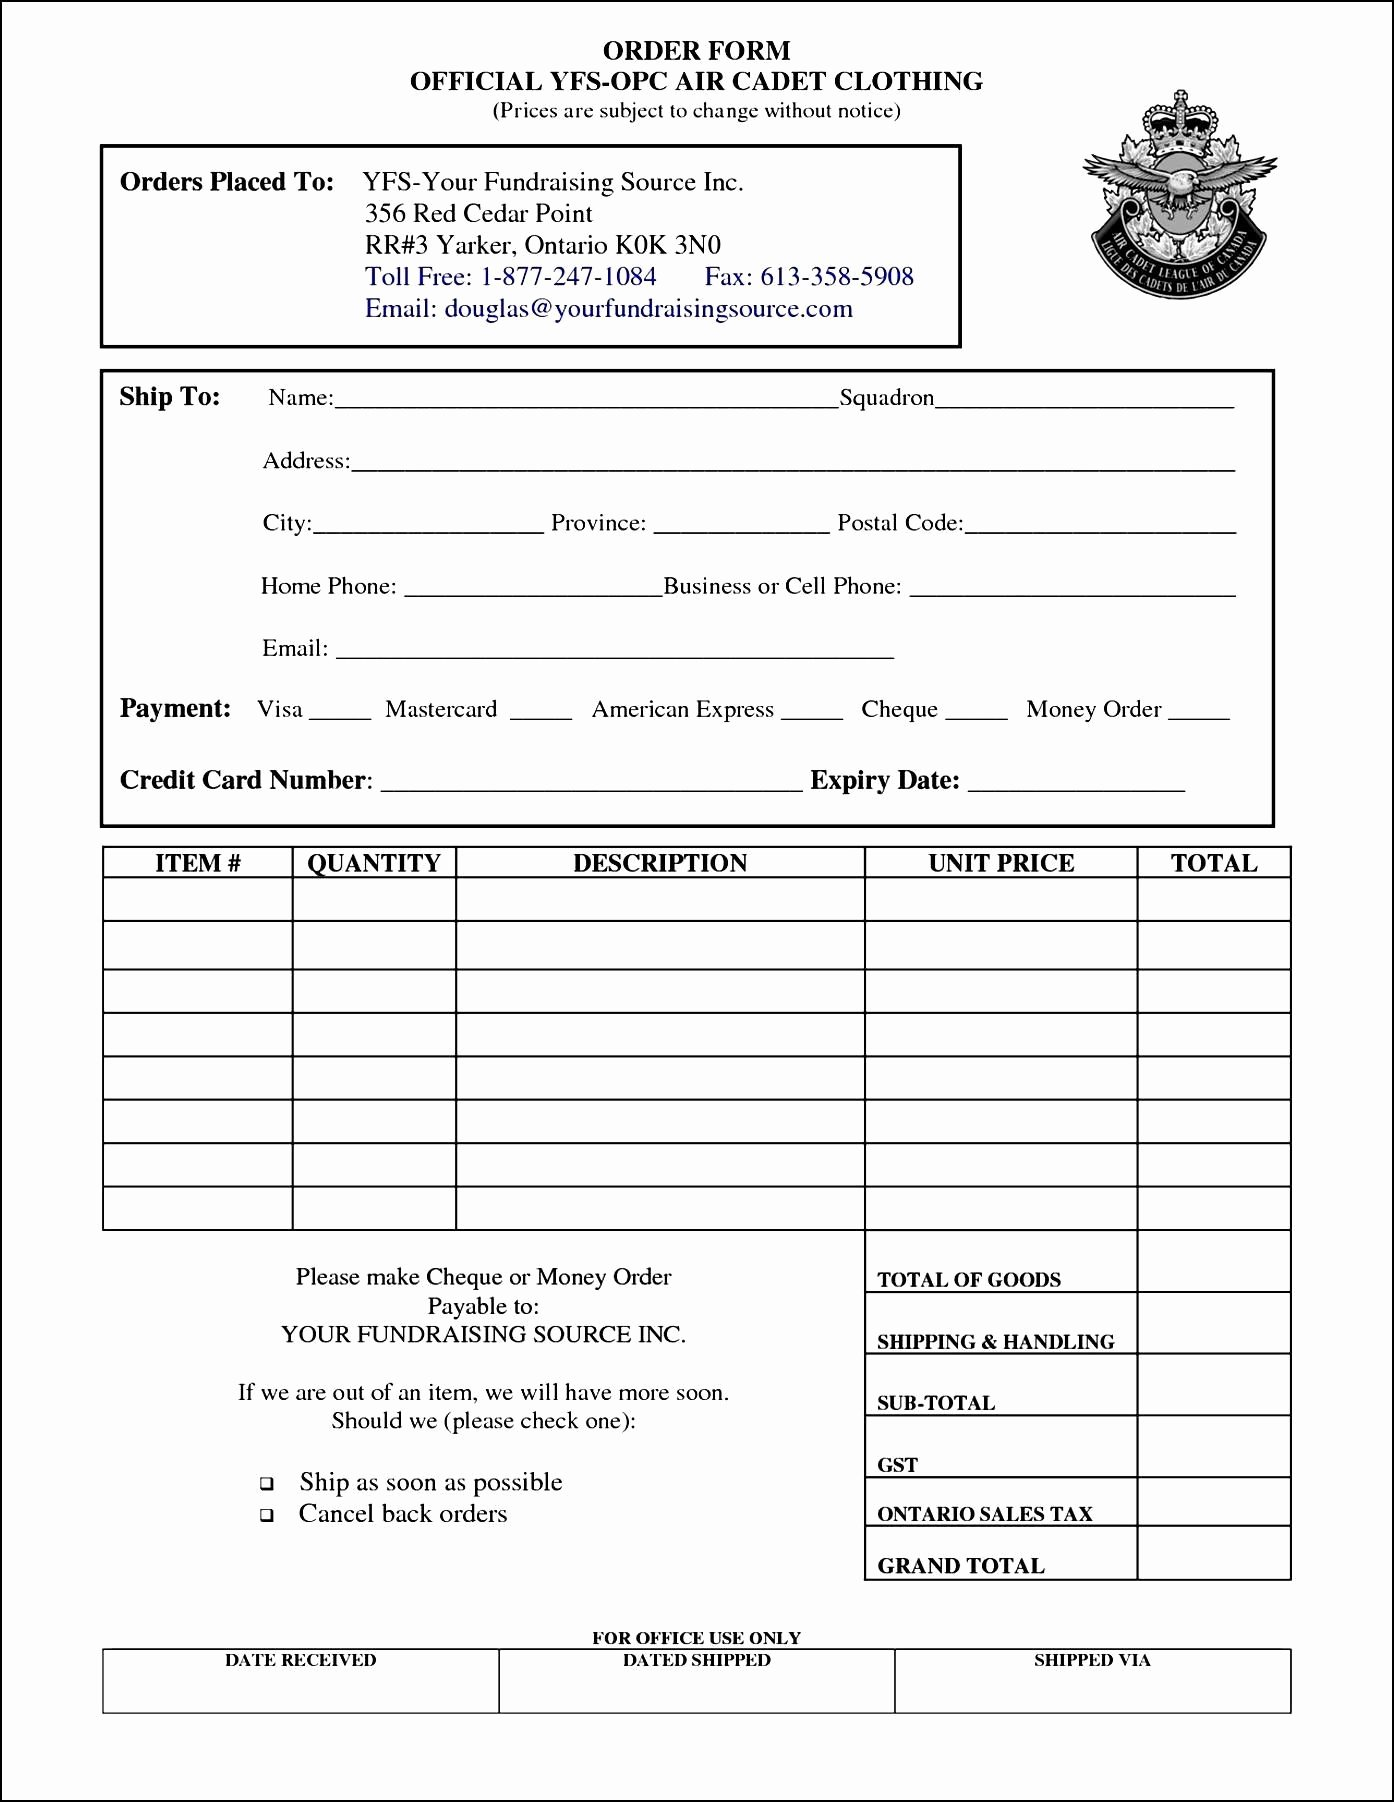 Clothing order form Template New Clothing order form Template Free